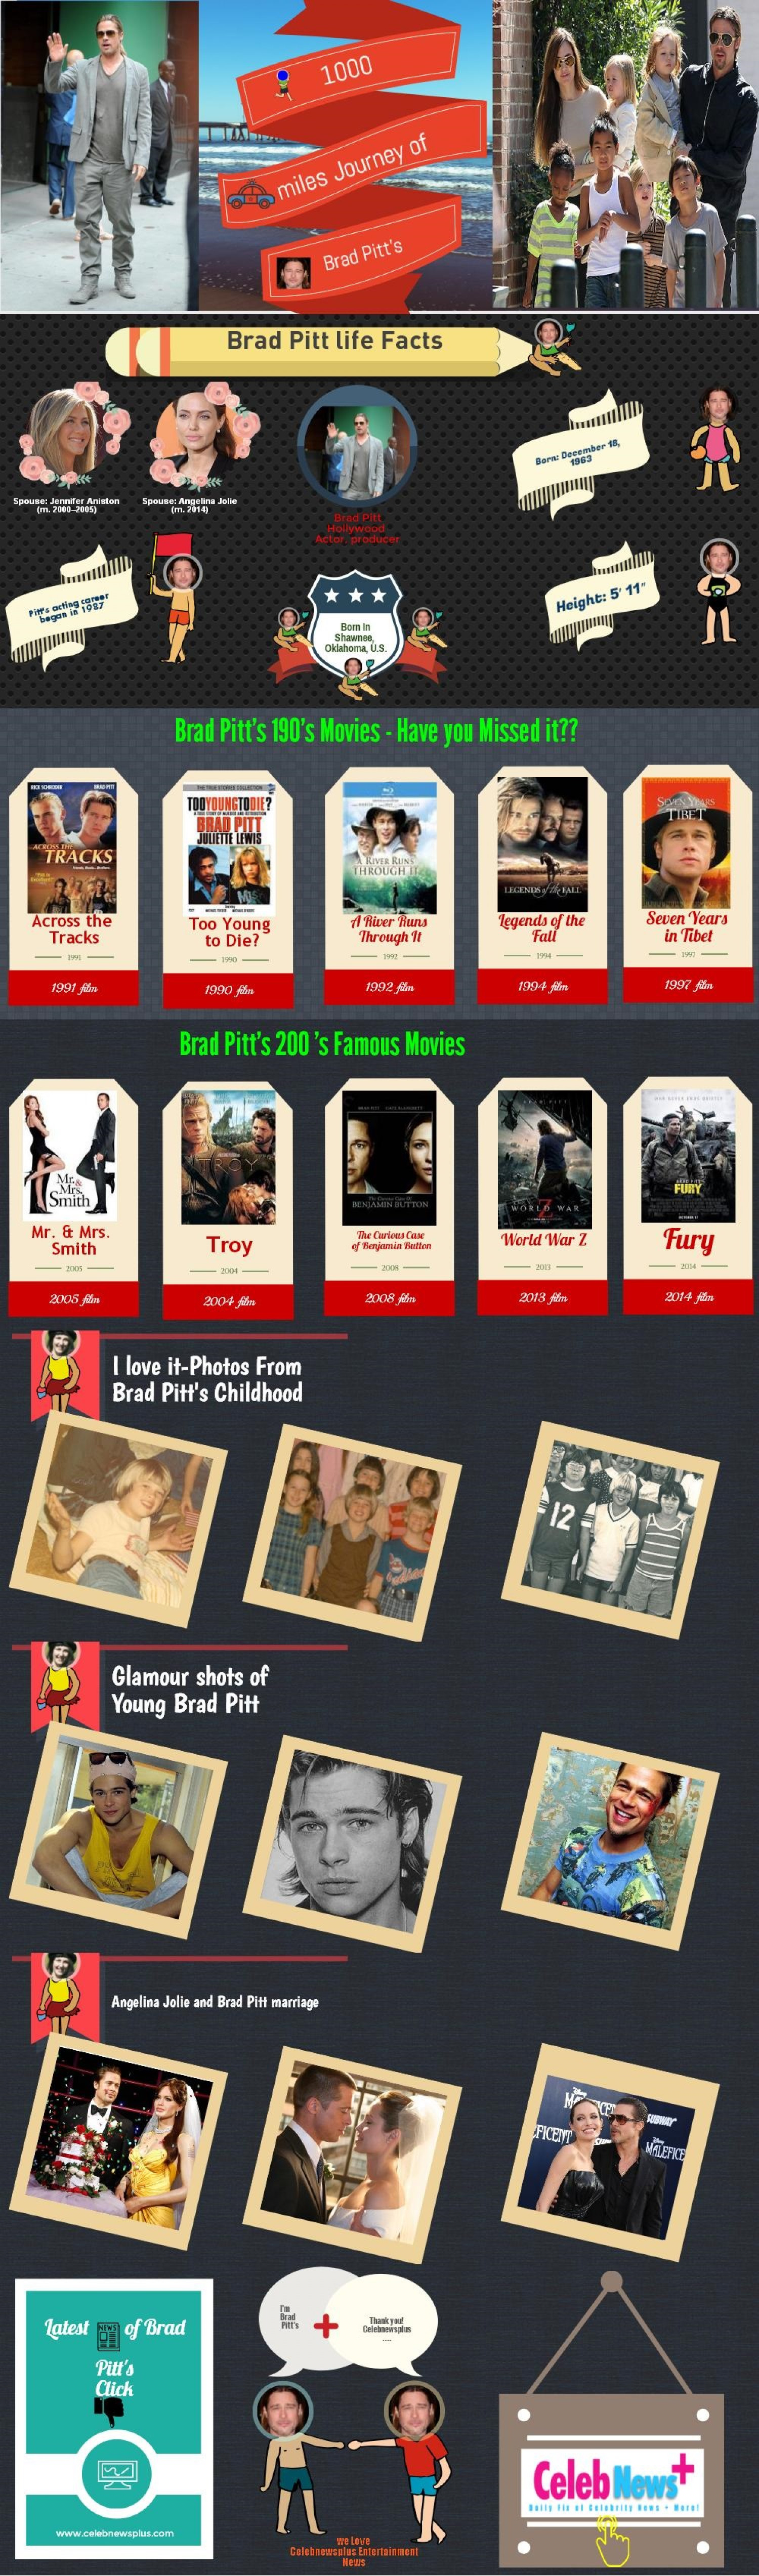 1000 miles journey of Brad Pitt's - Celebrity Gossip Infographic